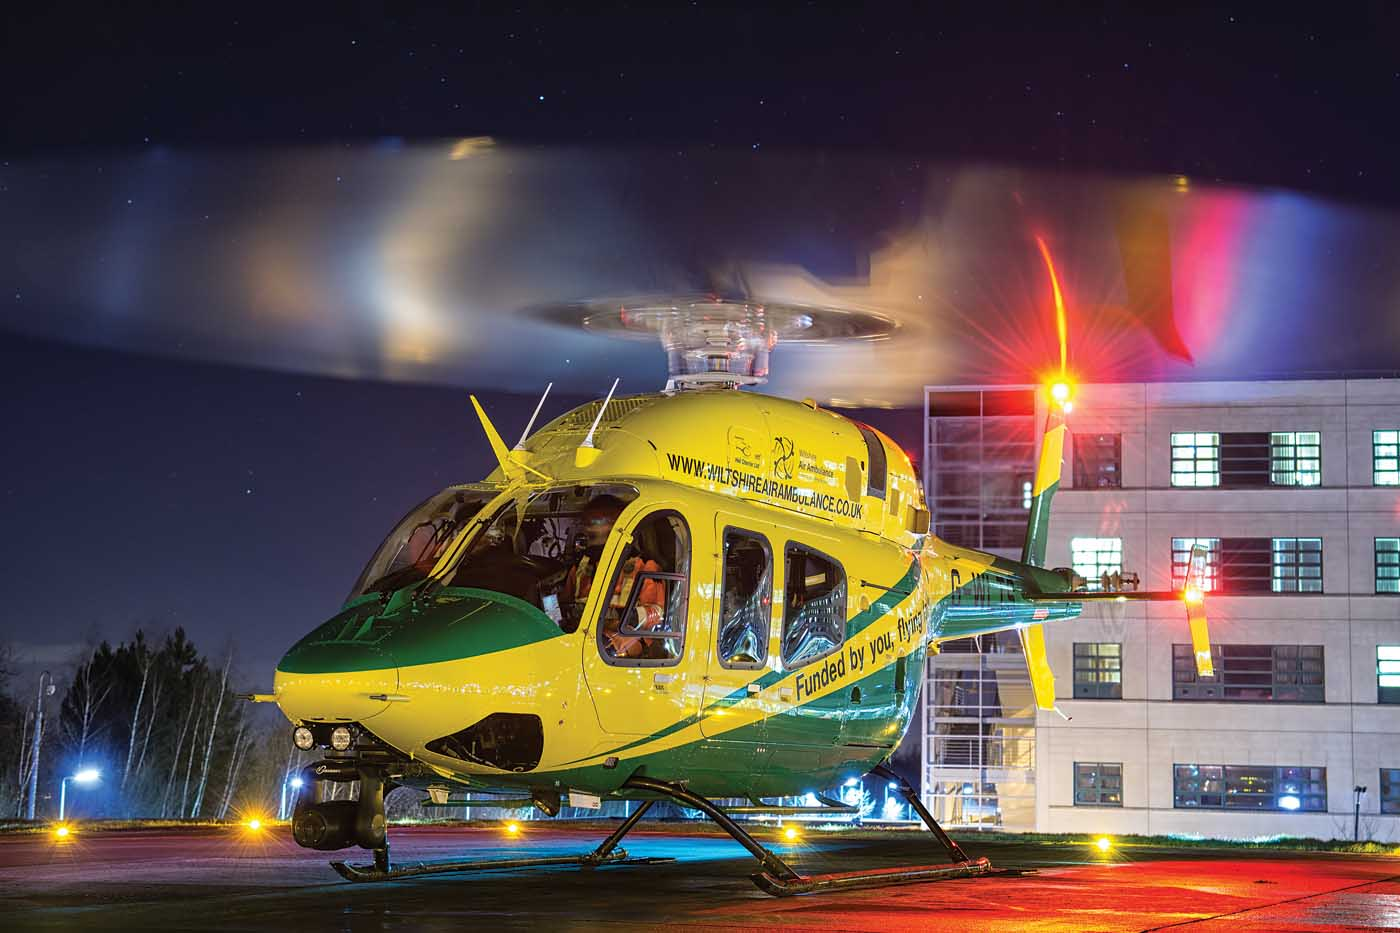 Helicopter rests on helipad